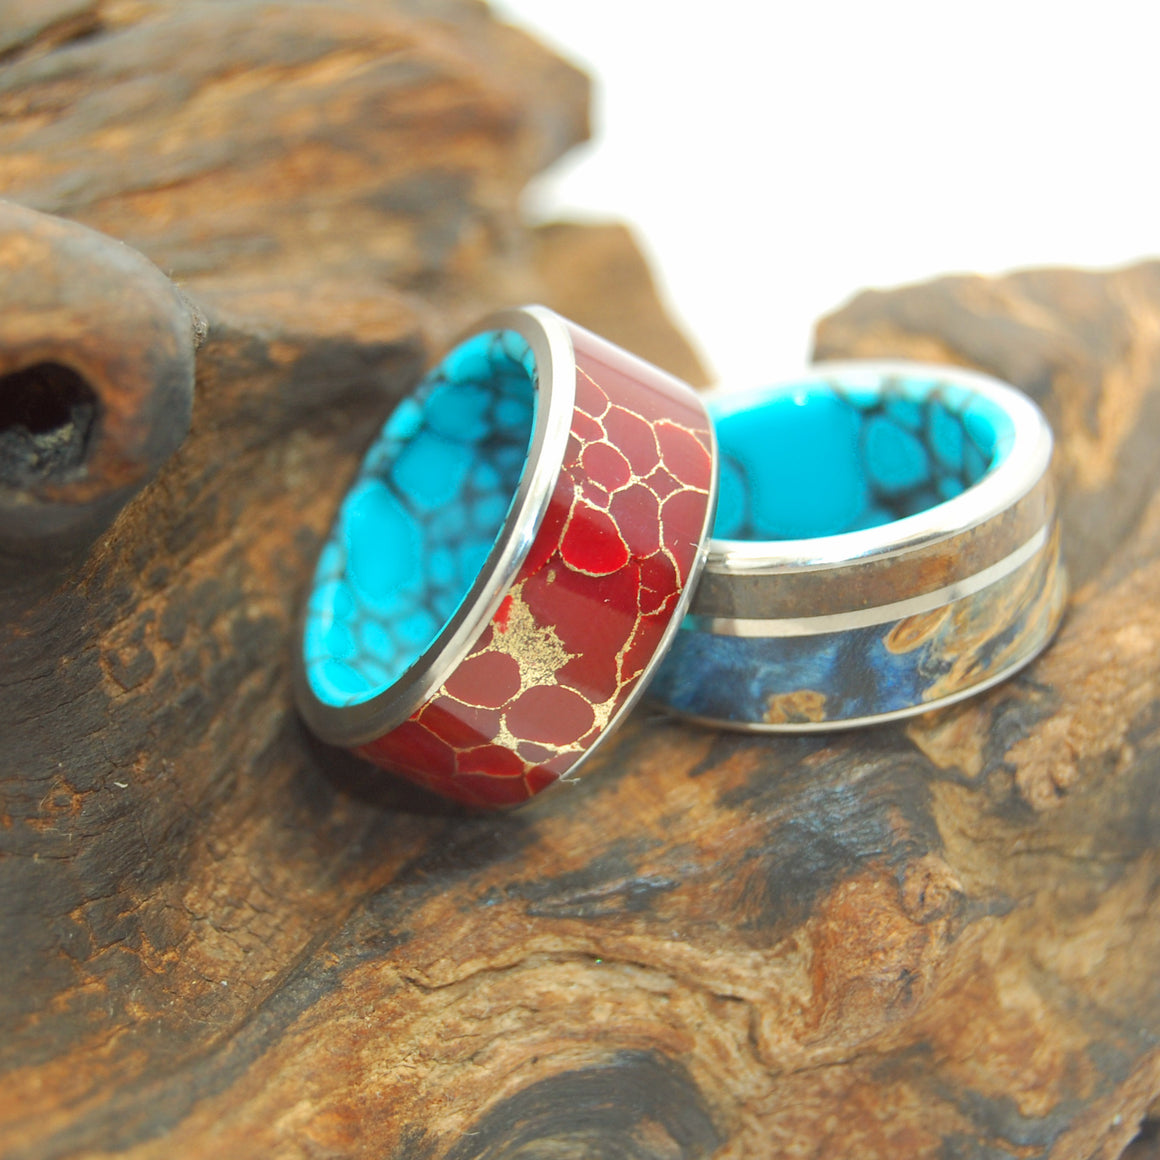 BOLD SET | Blue Box Elder Wood, Red Jasper Stone, Turquoise - Titanium Wedding Rings set - Minter and Richter Designs